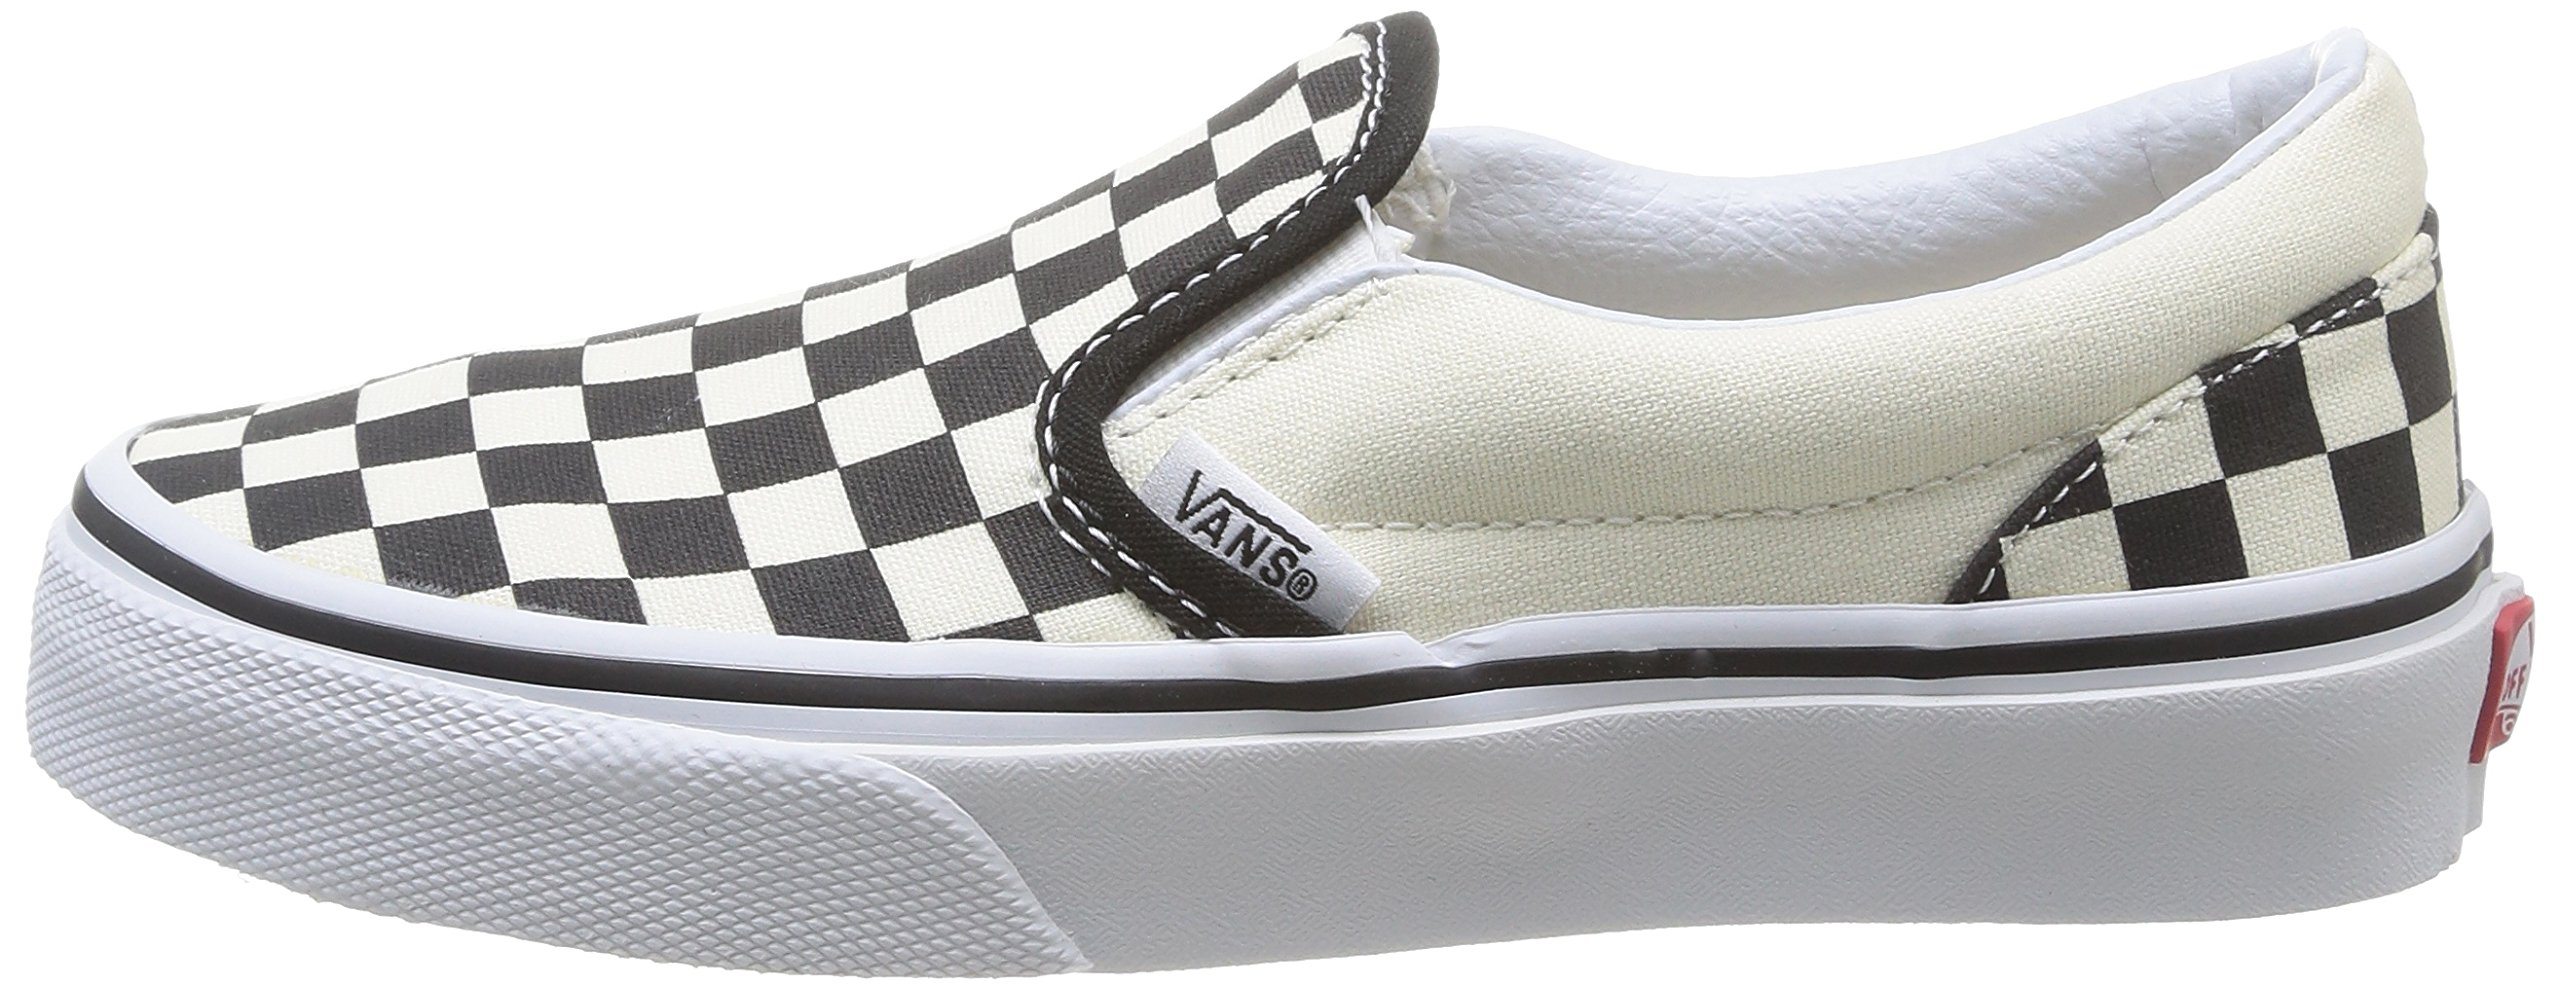 Vans Kids Classic Slip-On (Little Big Kid), ((Checkerboard) Black/White, 13 M by Vans (Image #5)